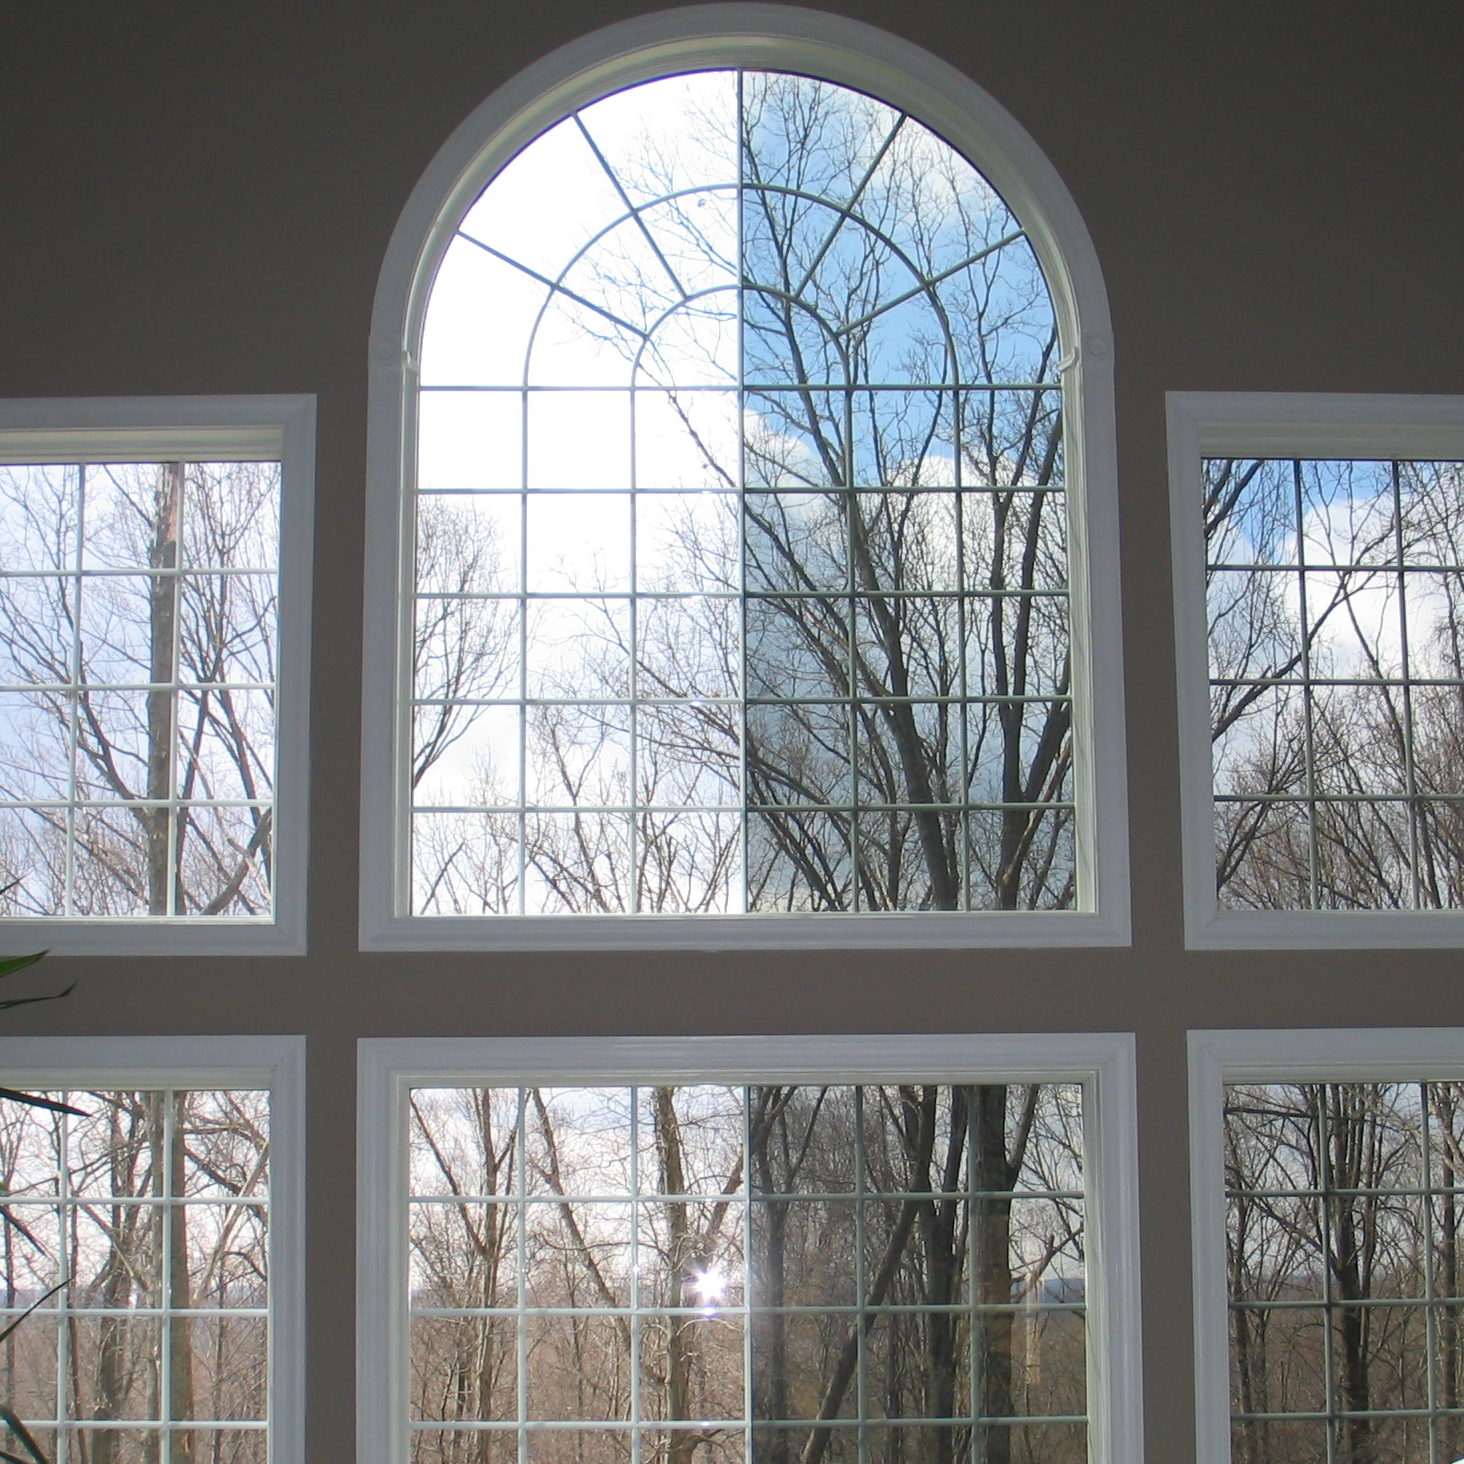 Greater Baltomore Residential and mercial Window Tint &